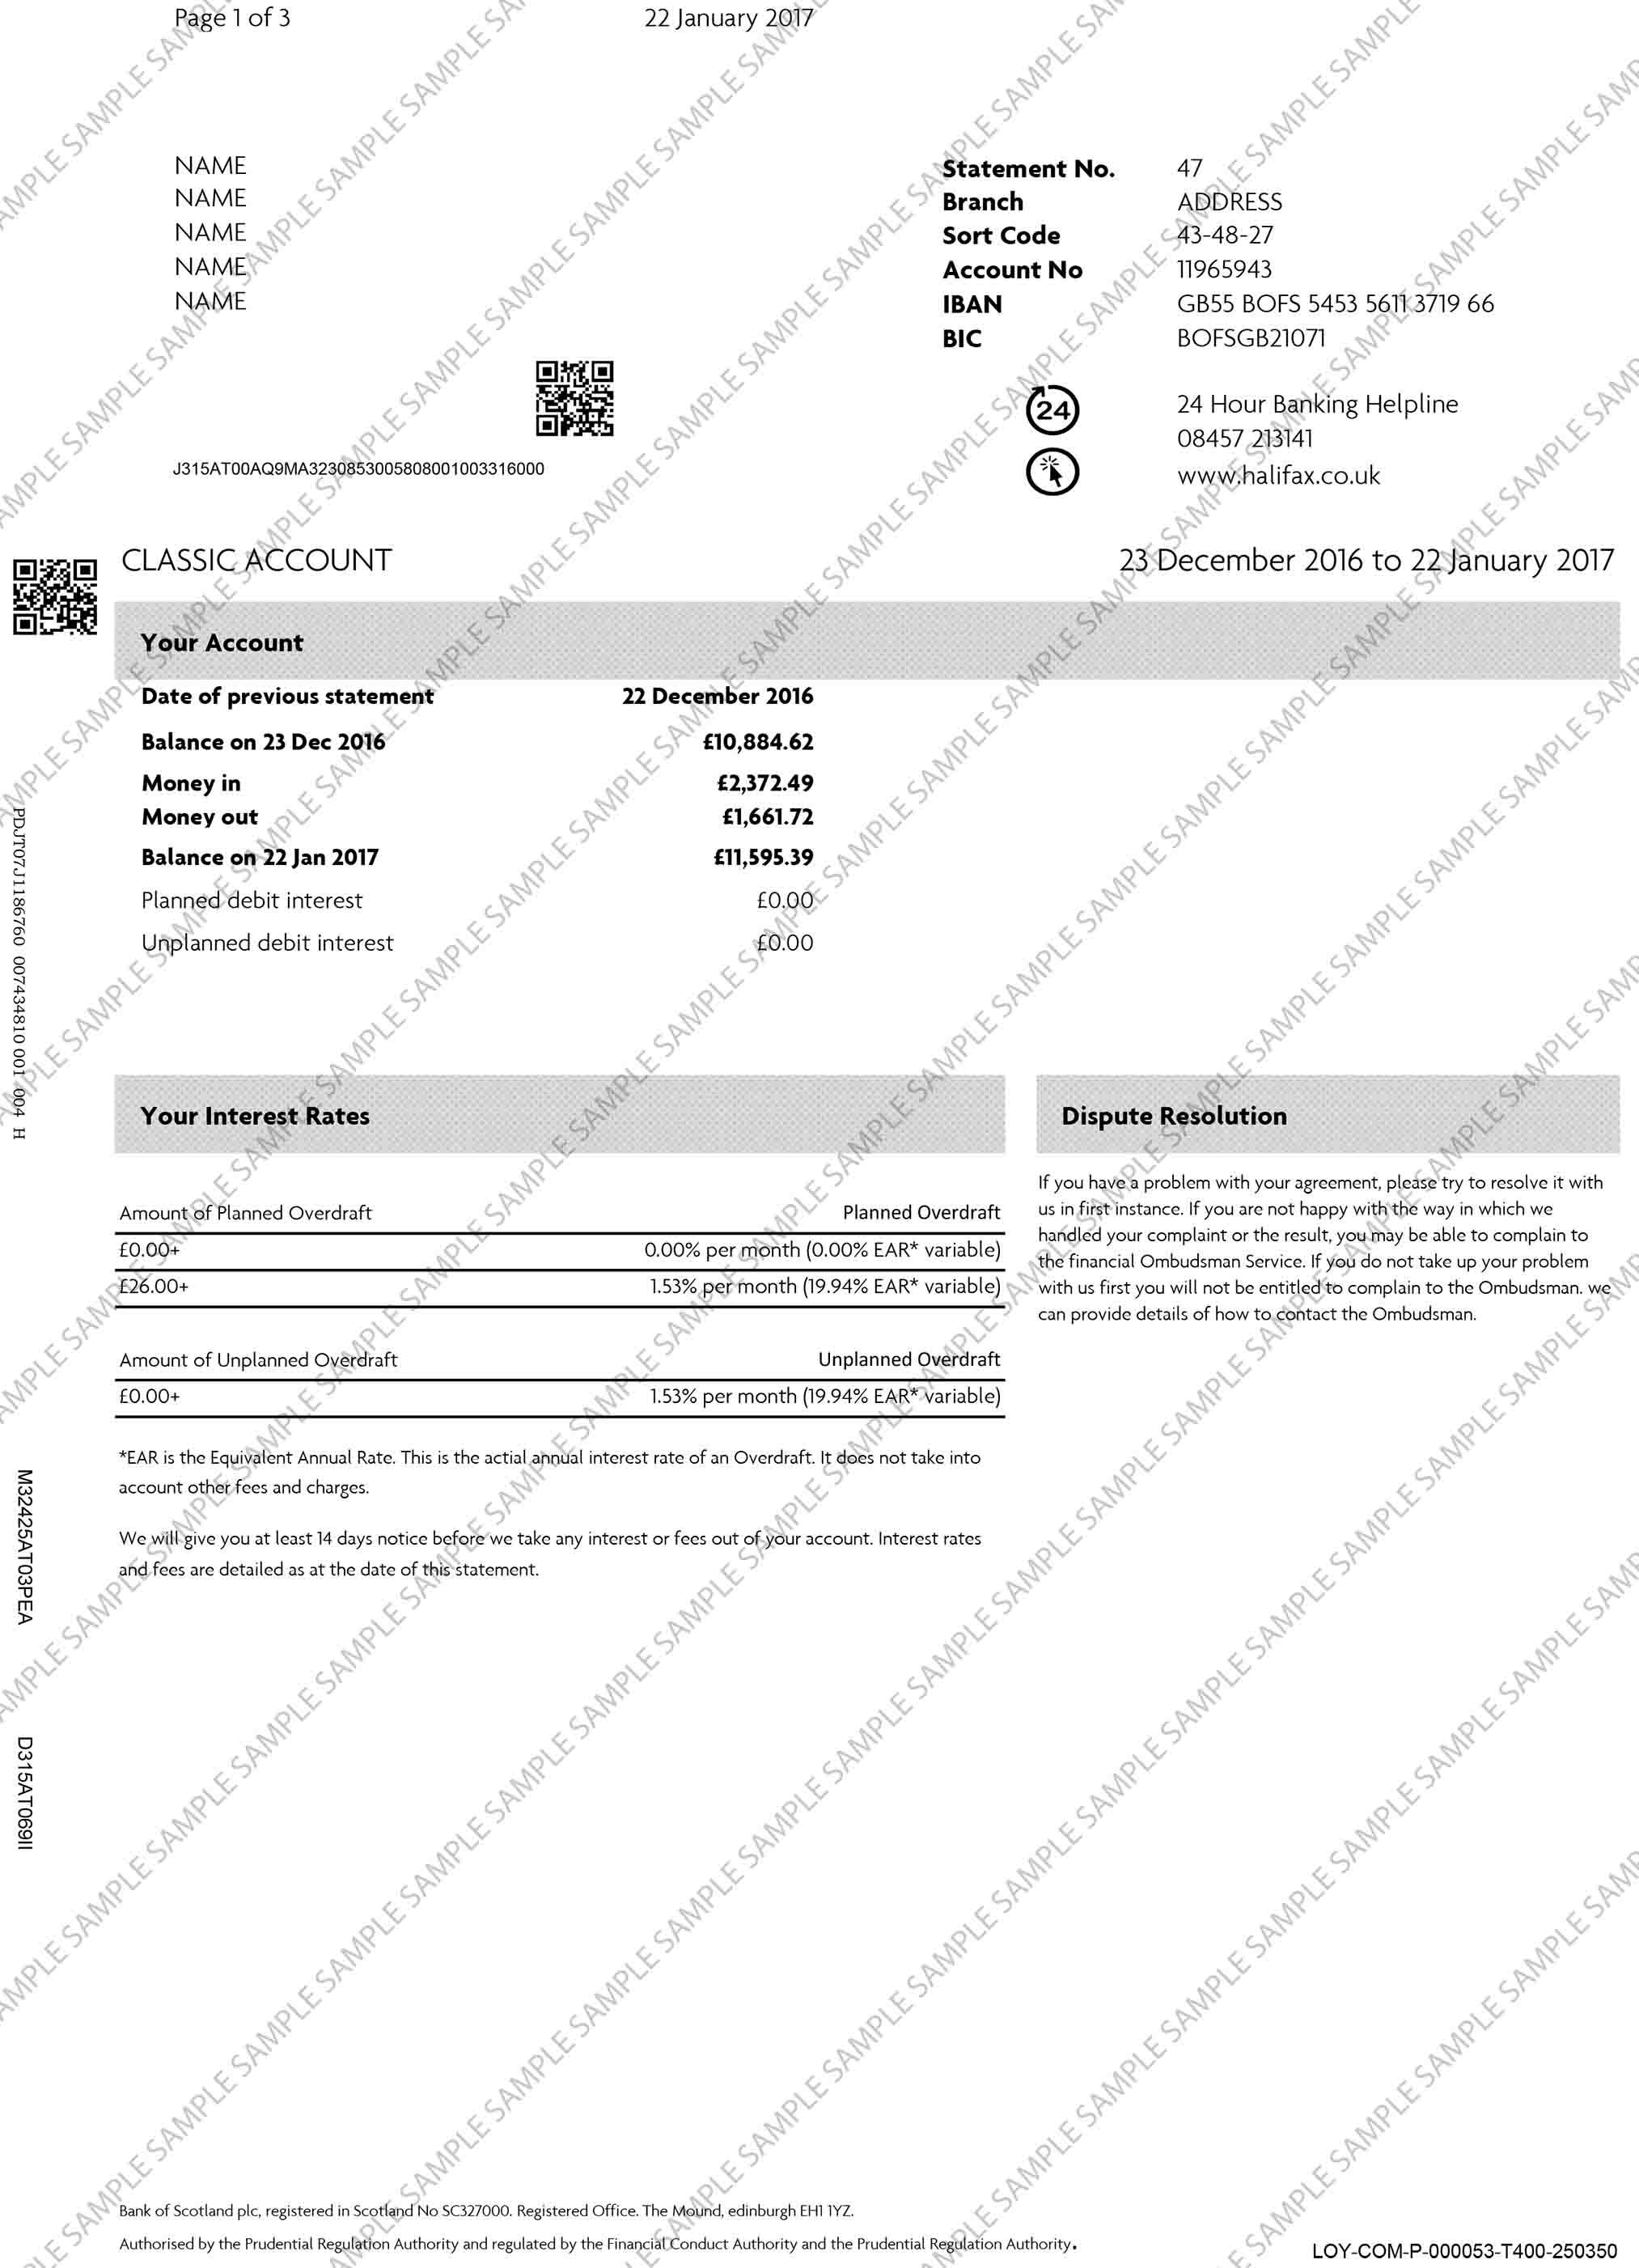 Bank Of Scotland Bank Statement With Images Bank Statement